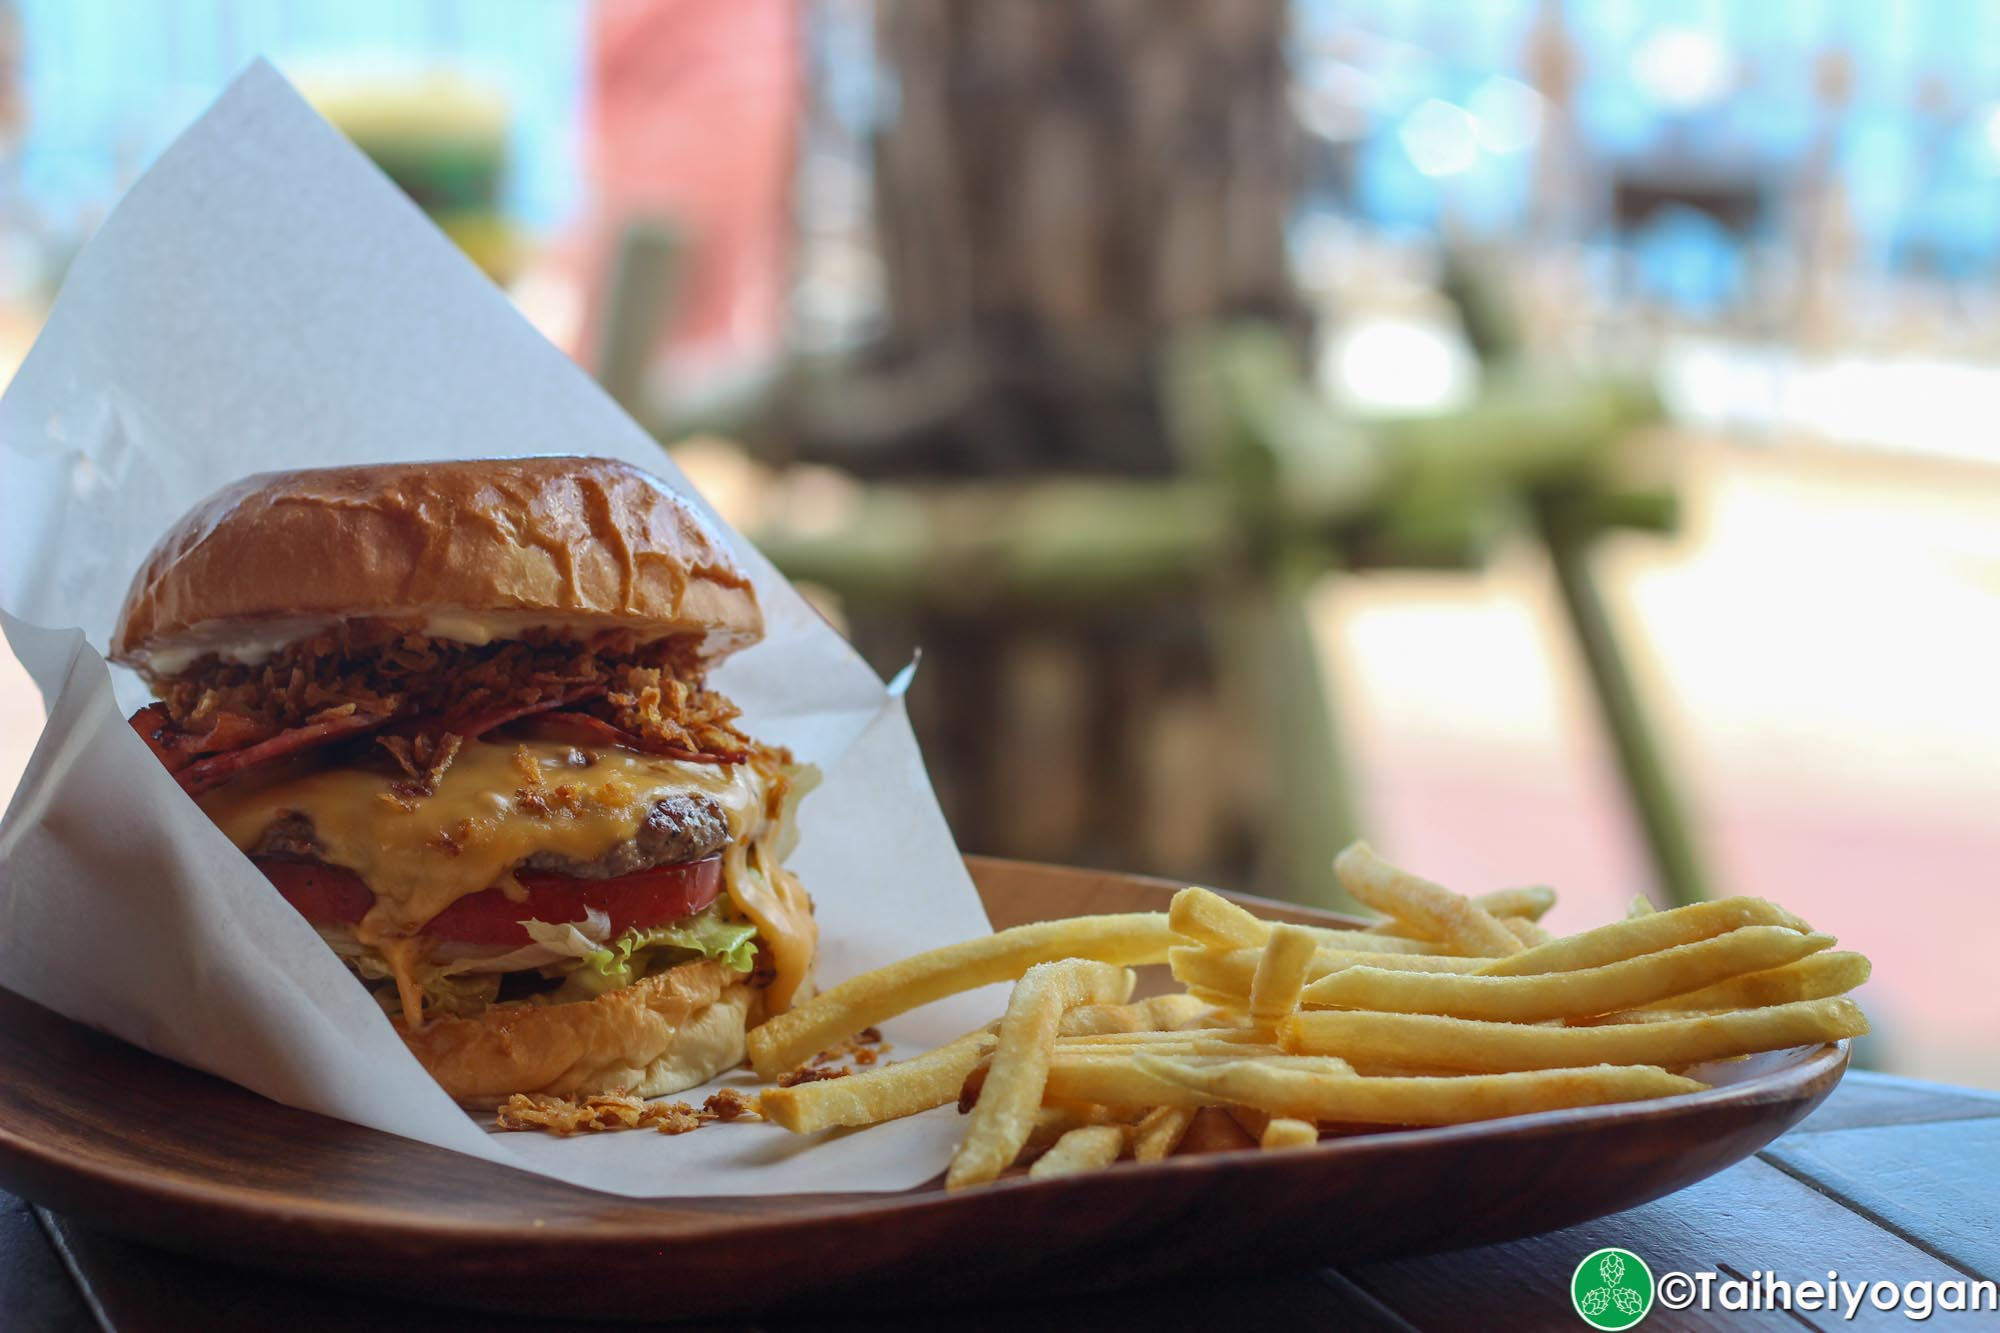 Chatan Burger Base Atabii's - Menu - Neo Bacon Cheeseburger